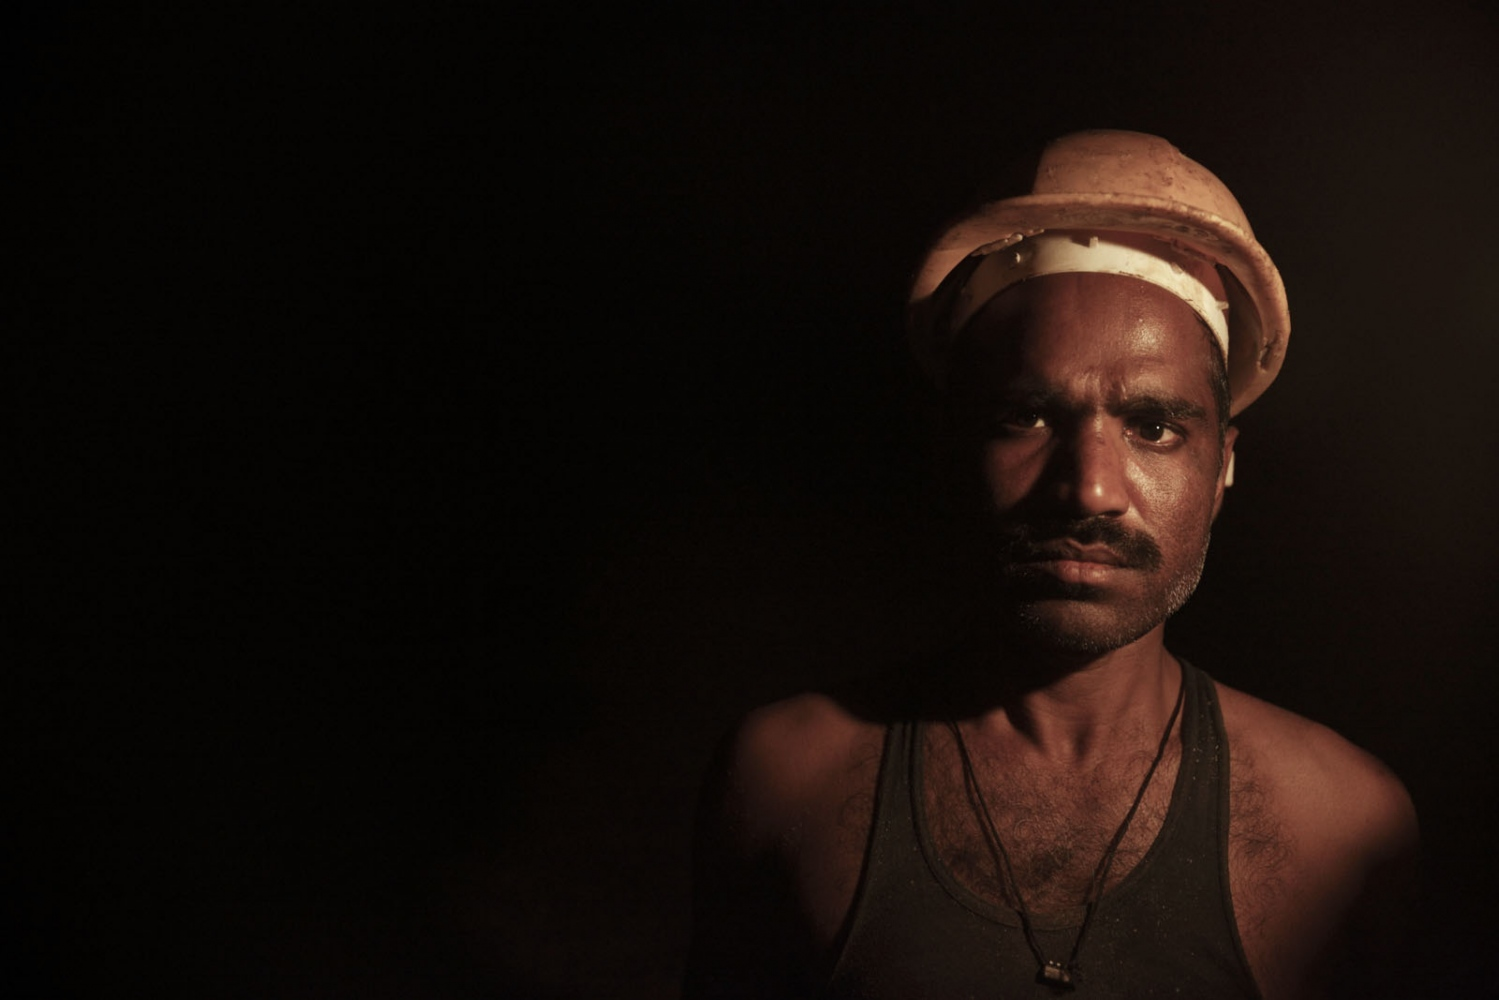 A salt workers in the darkness of the Warcha salt mine. Punjab, Pakistan.